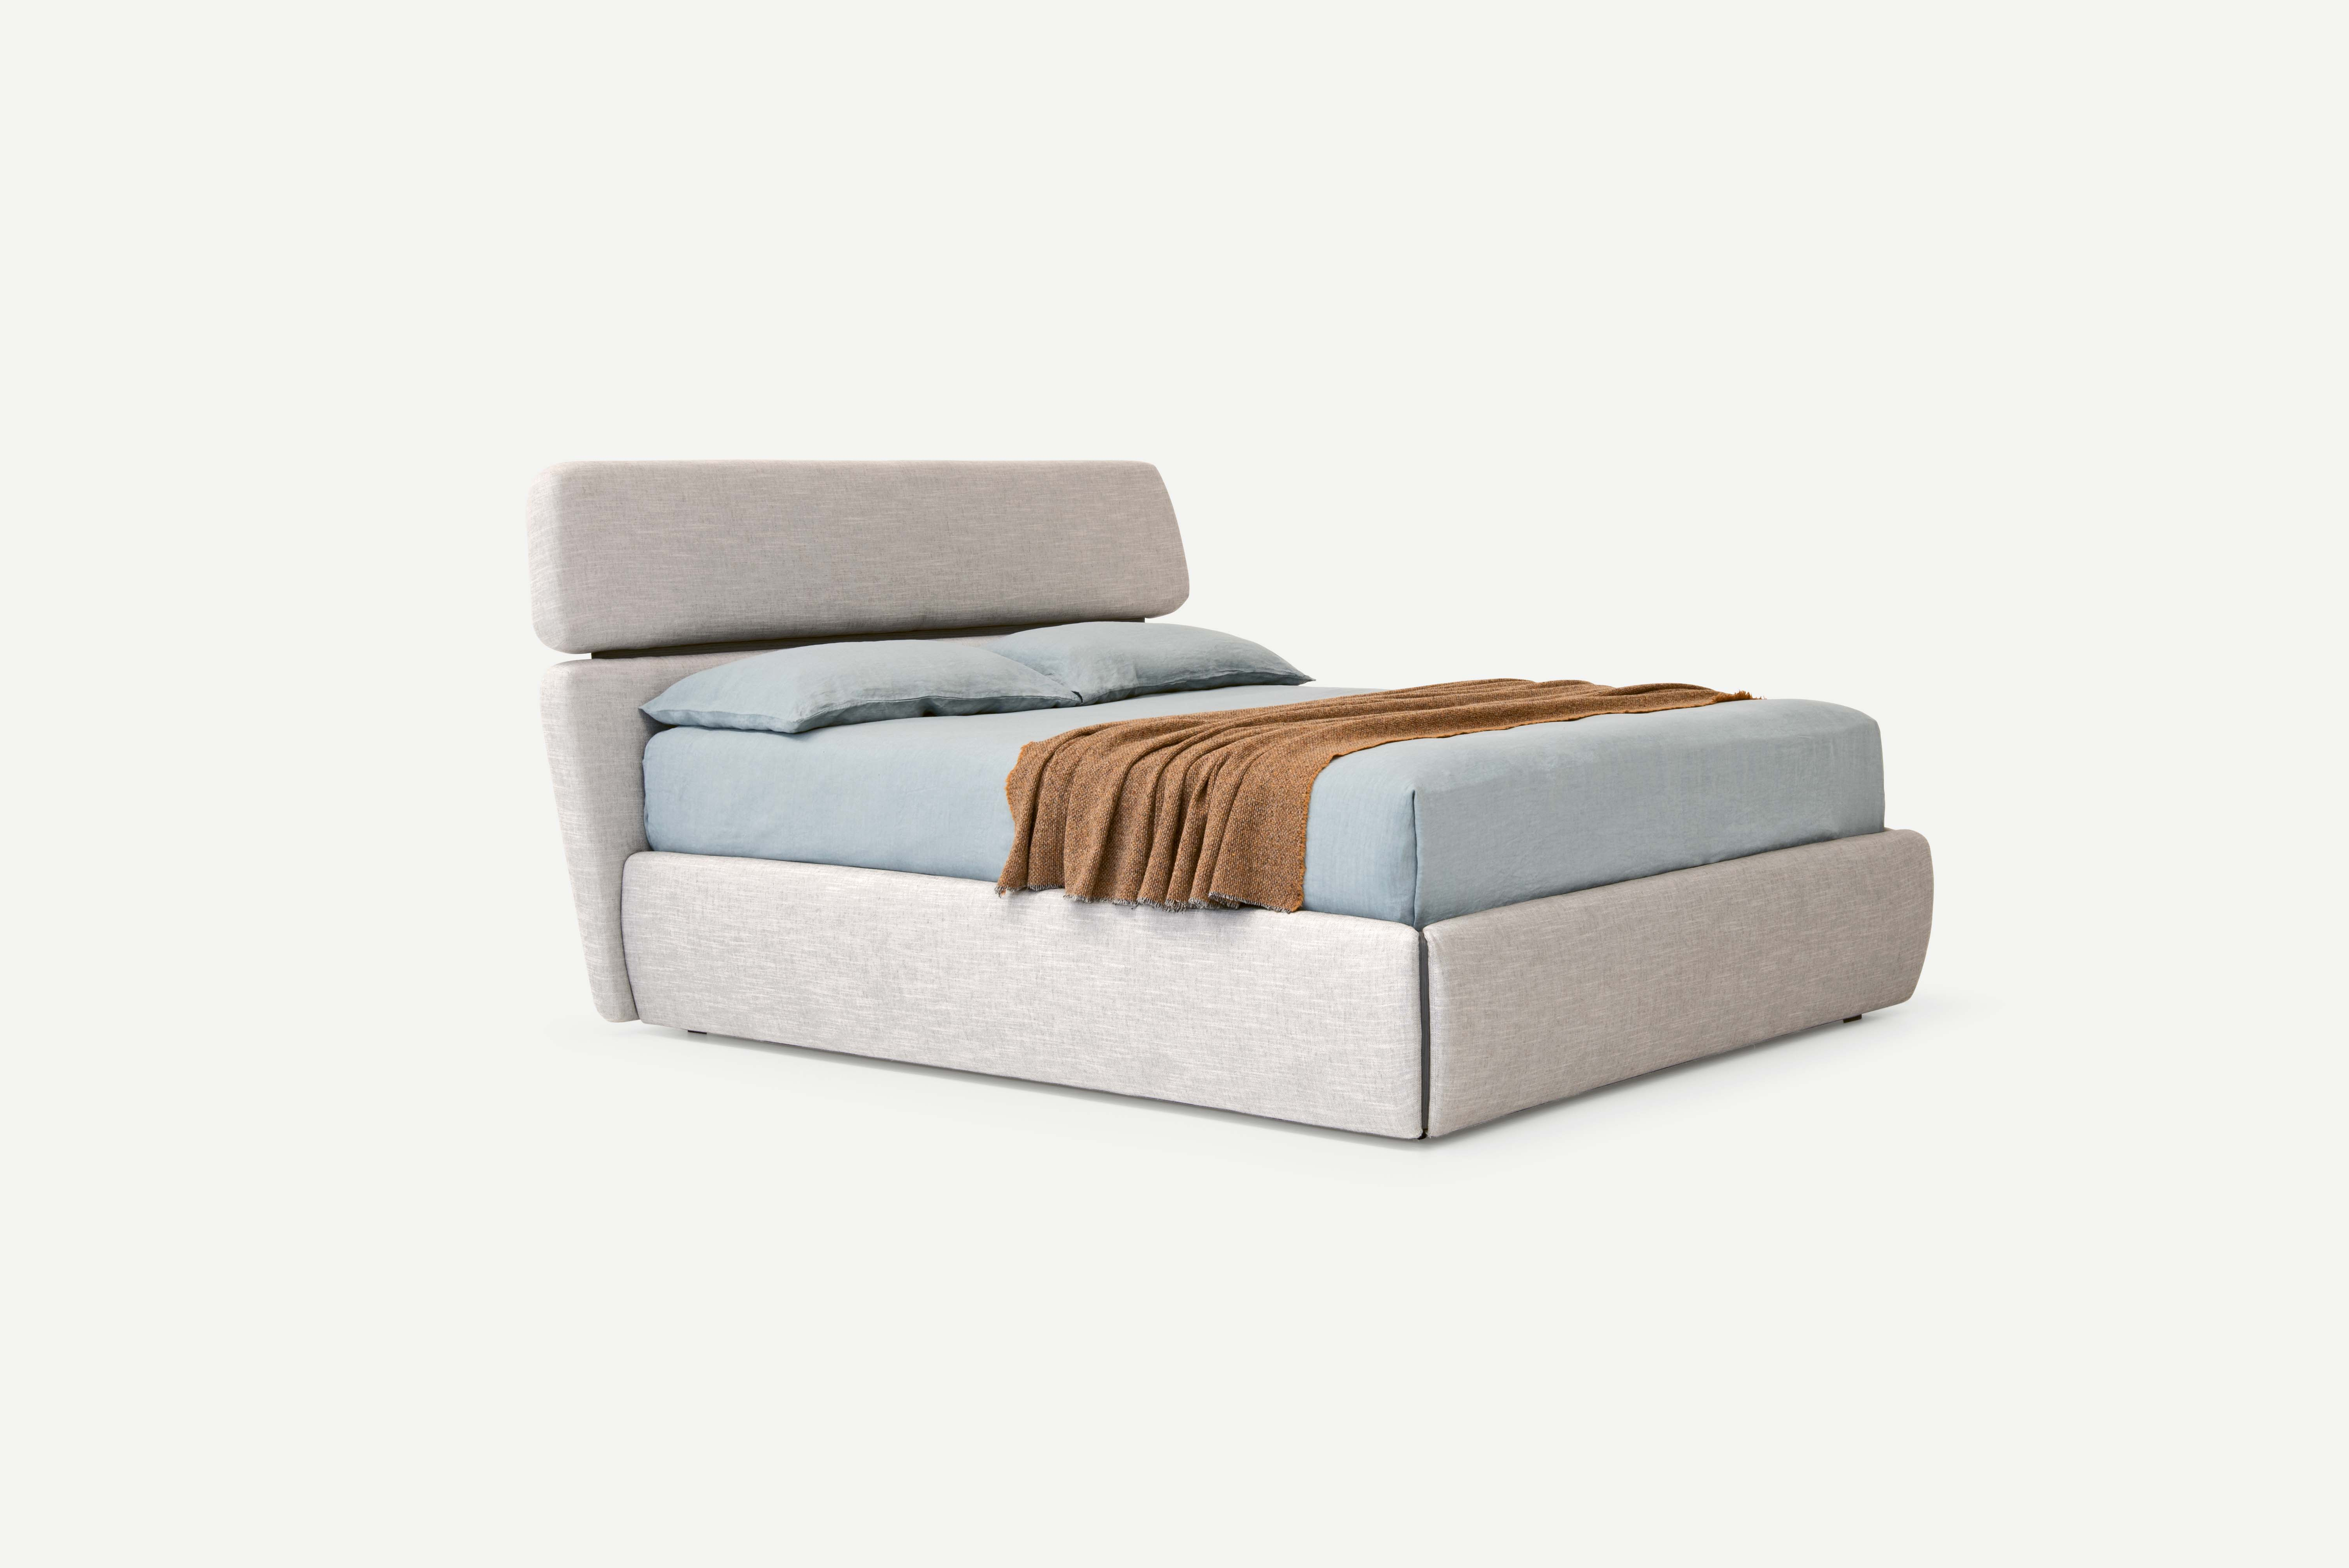 Rialto bed with storage base and upholstered bedframe and straight headboard design Emmanuel Gallina